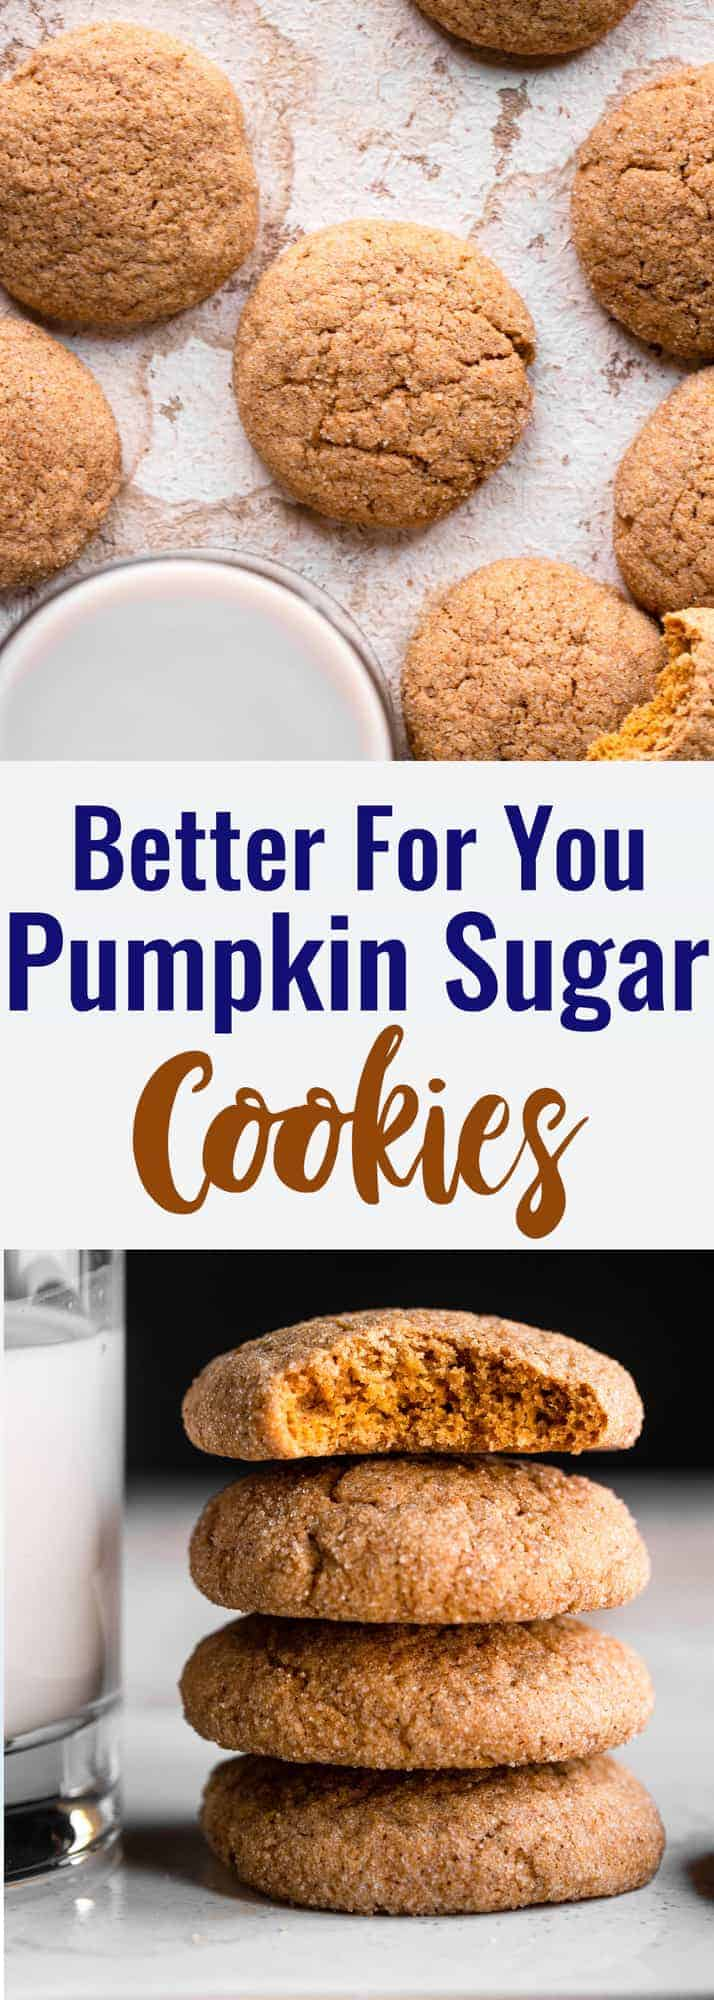 pumpkin sugar cookies collage photo